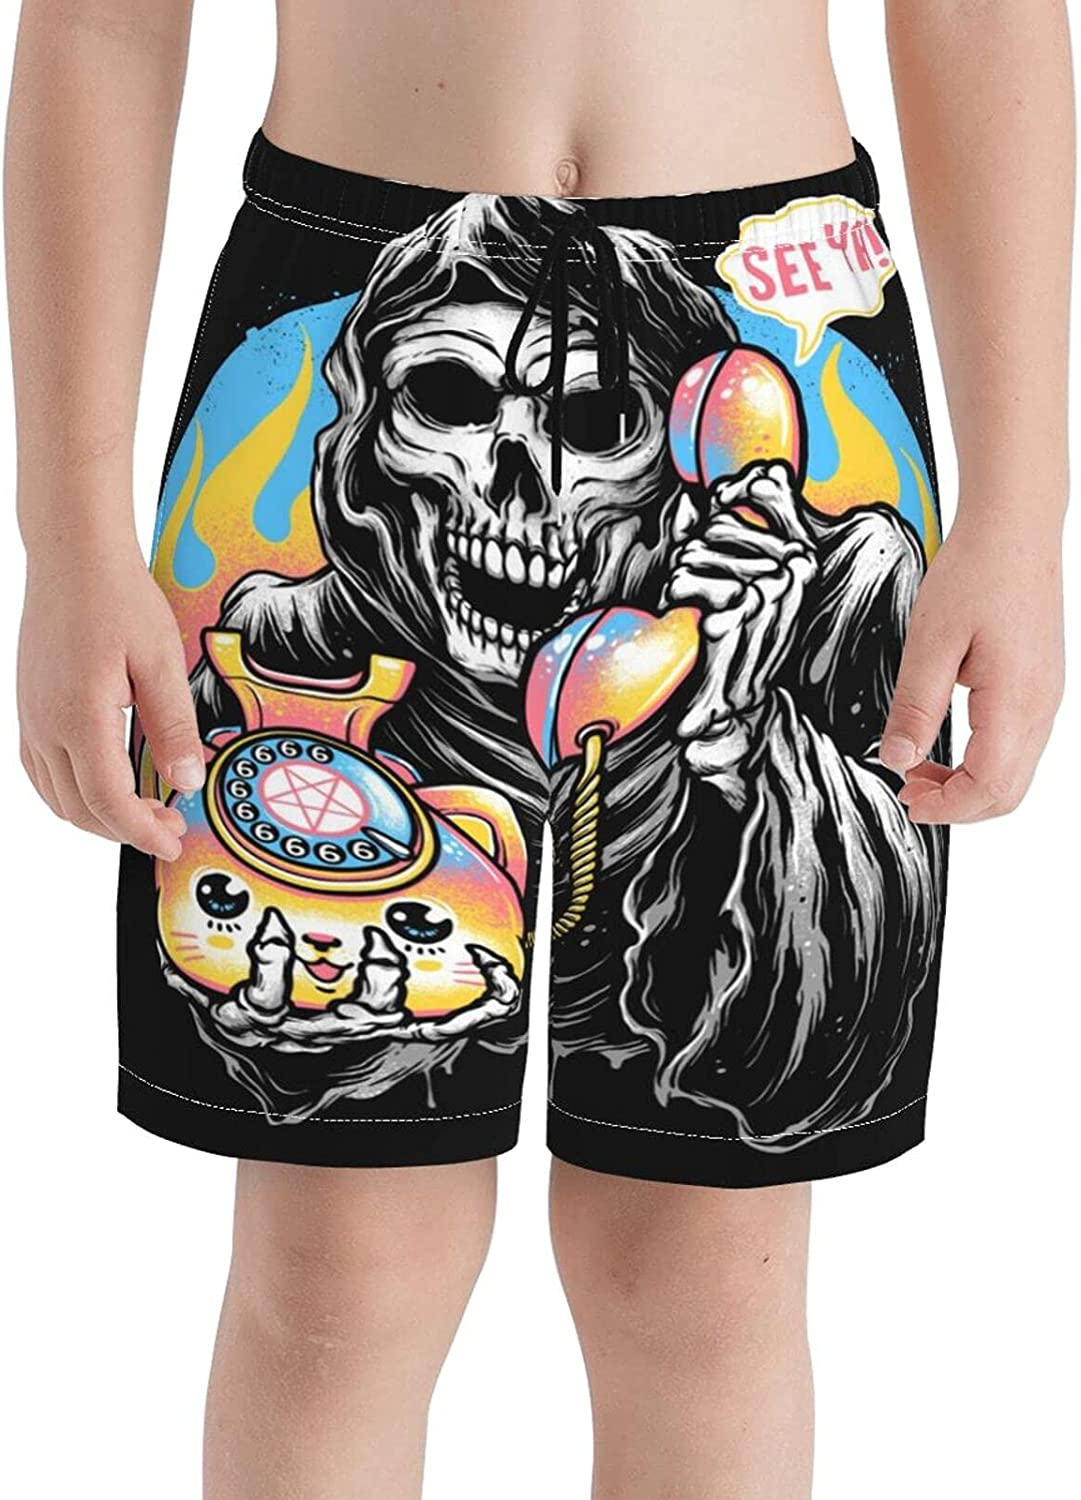 wholesale Mcdd Printed Men's Swim Trunks Dry Quick Product Board Sports Trunk